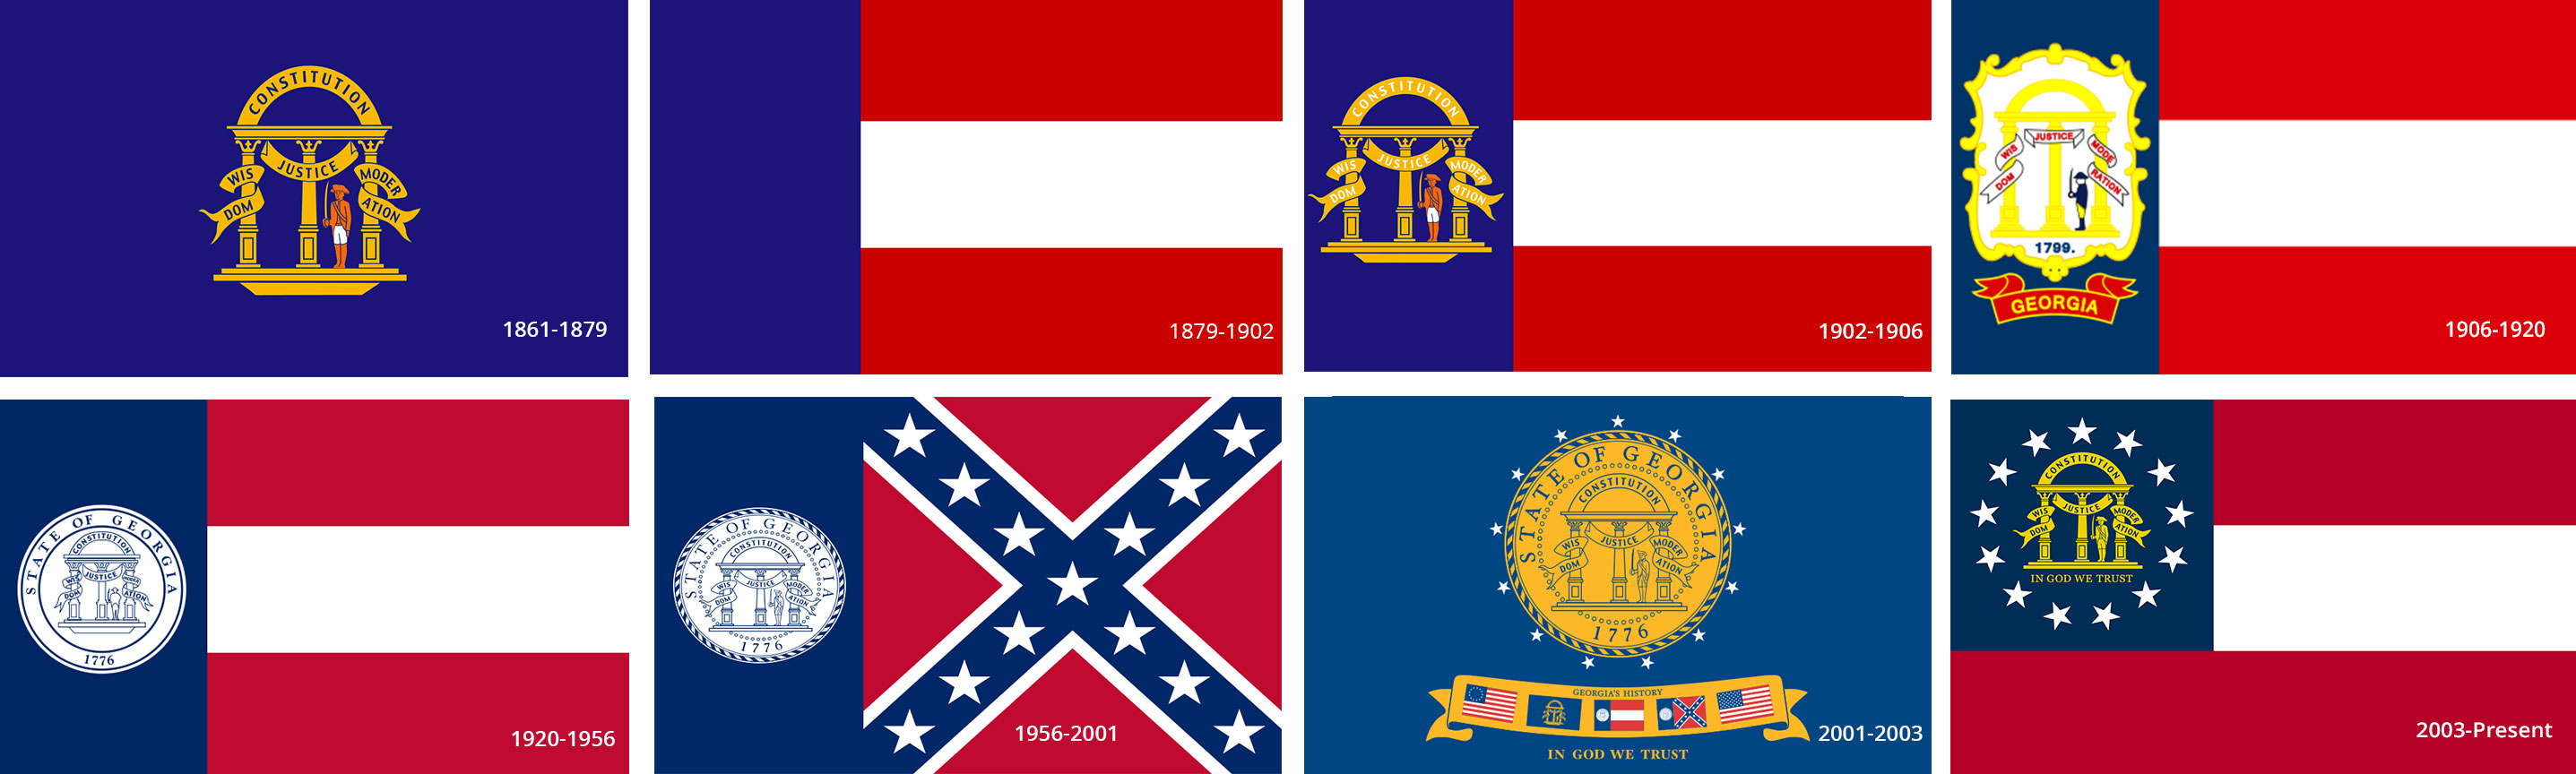 Georgia State Flags History